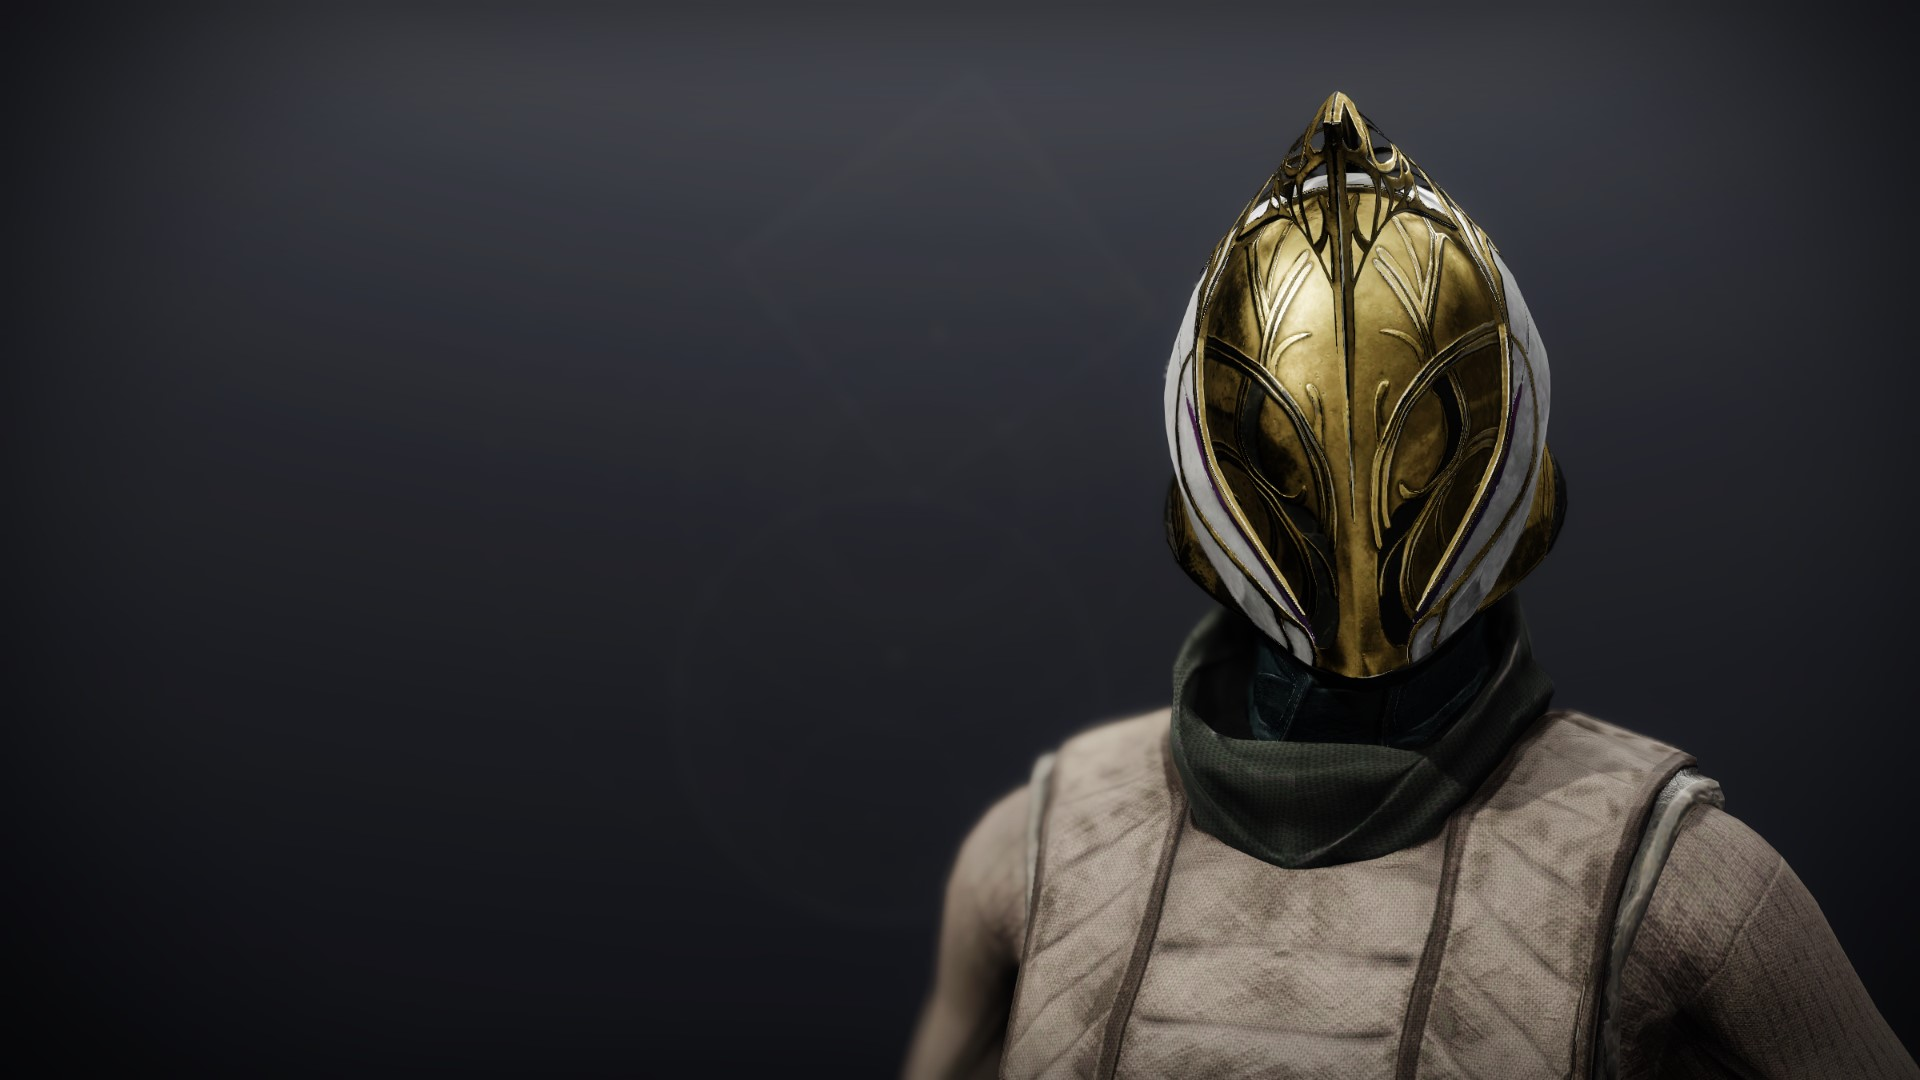 An in-game render of the Celestine Hood (Magnificent).